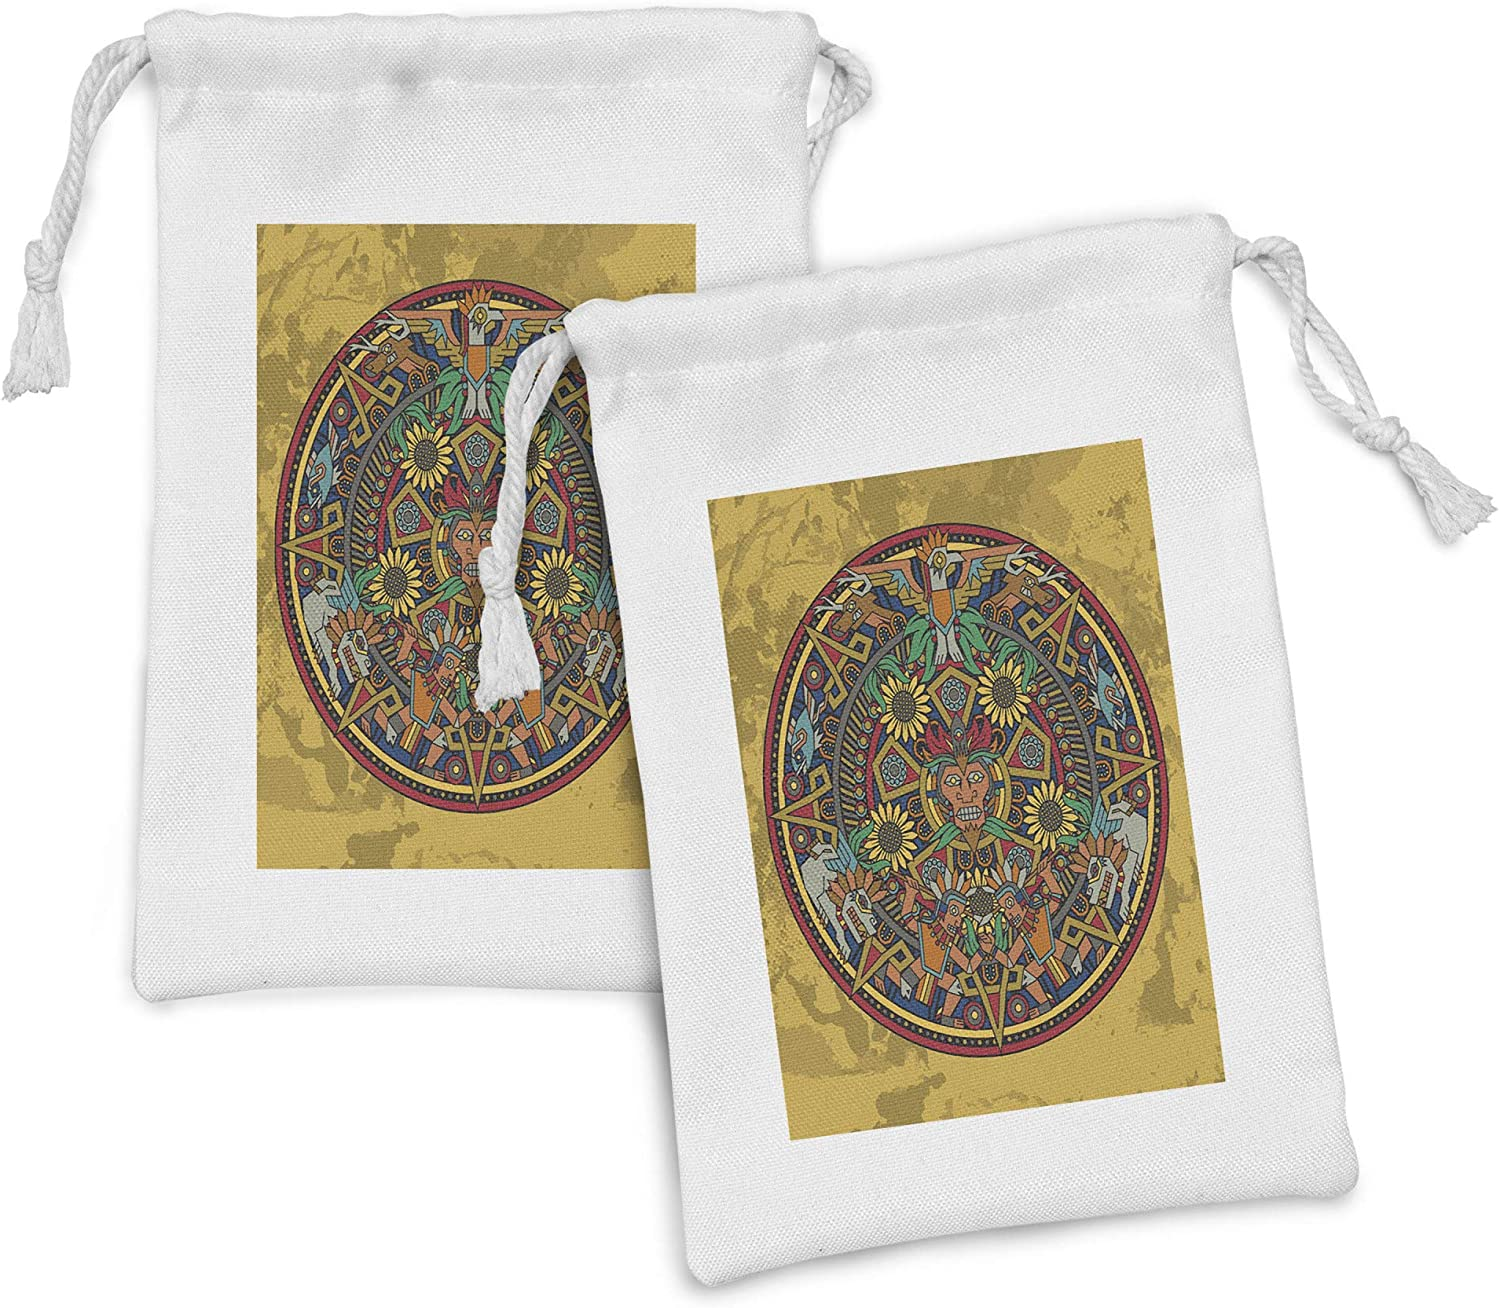 Ambesonne Same day shipping Rapid rise Tribal Fabric Pouch Set of Chaotic 2 wit Image Design